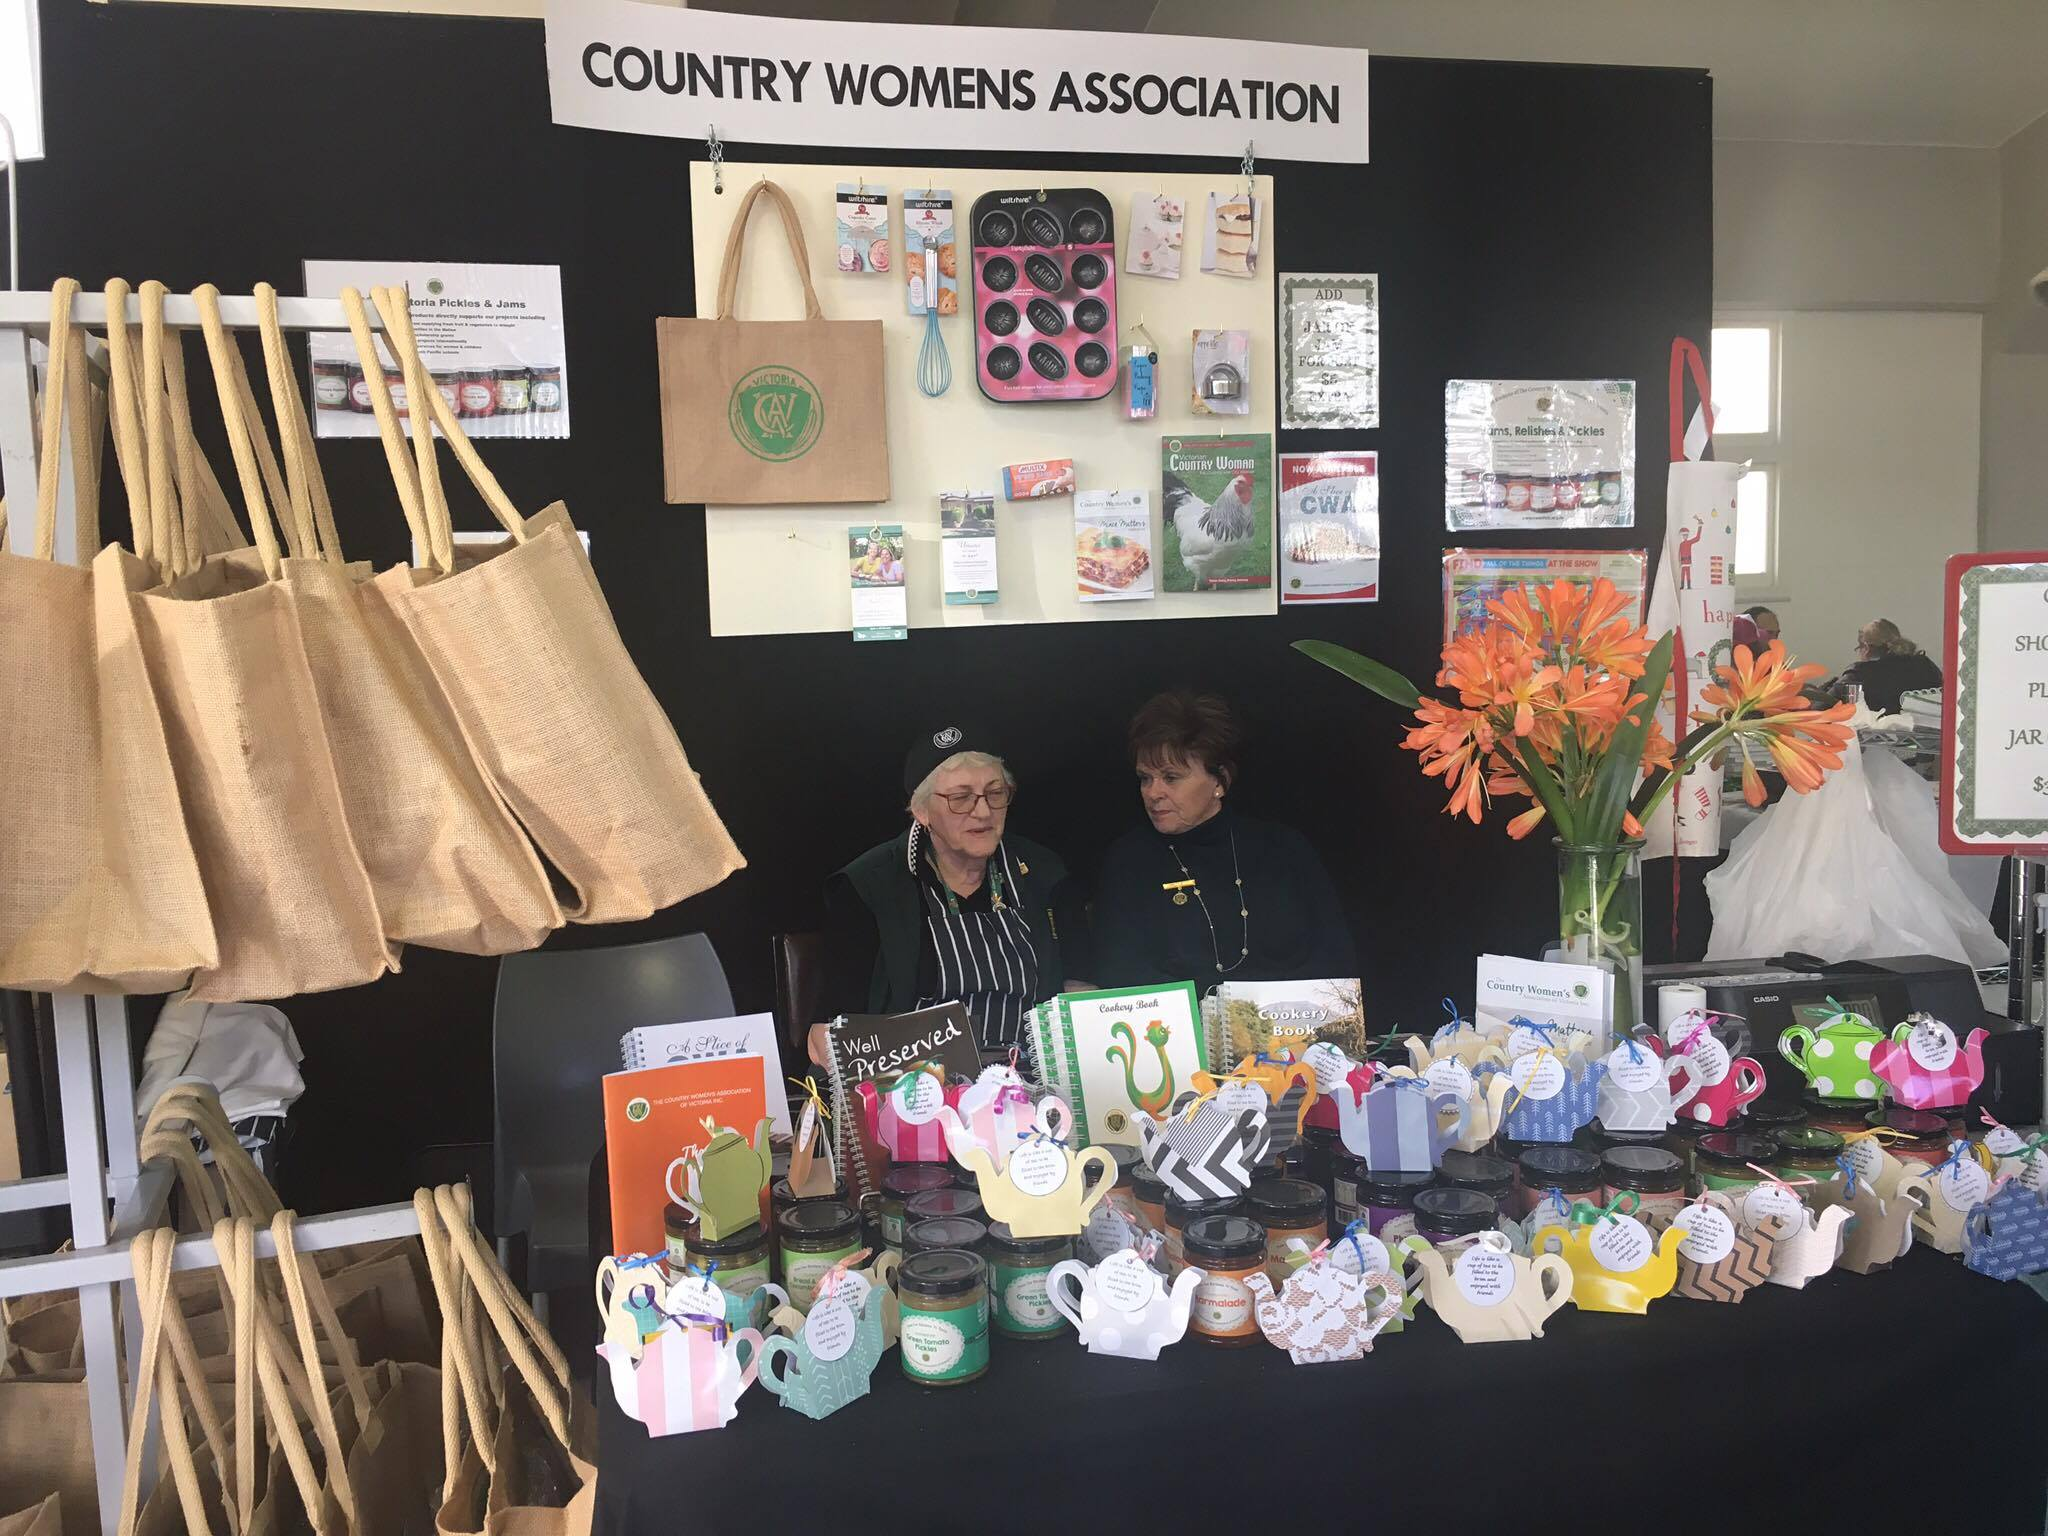 The CWA stand. Photo Annelise Answerth